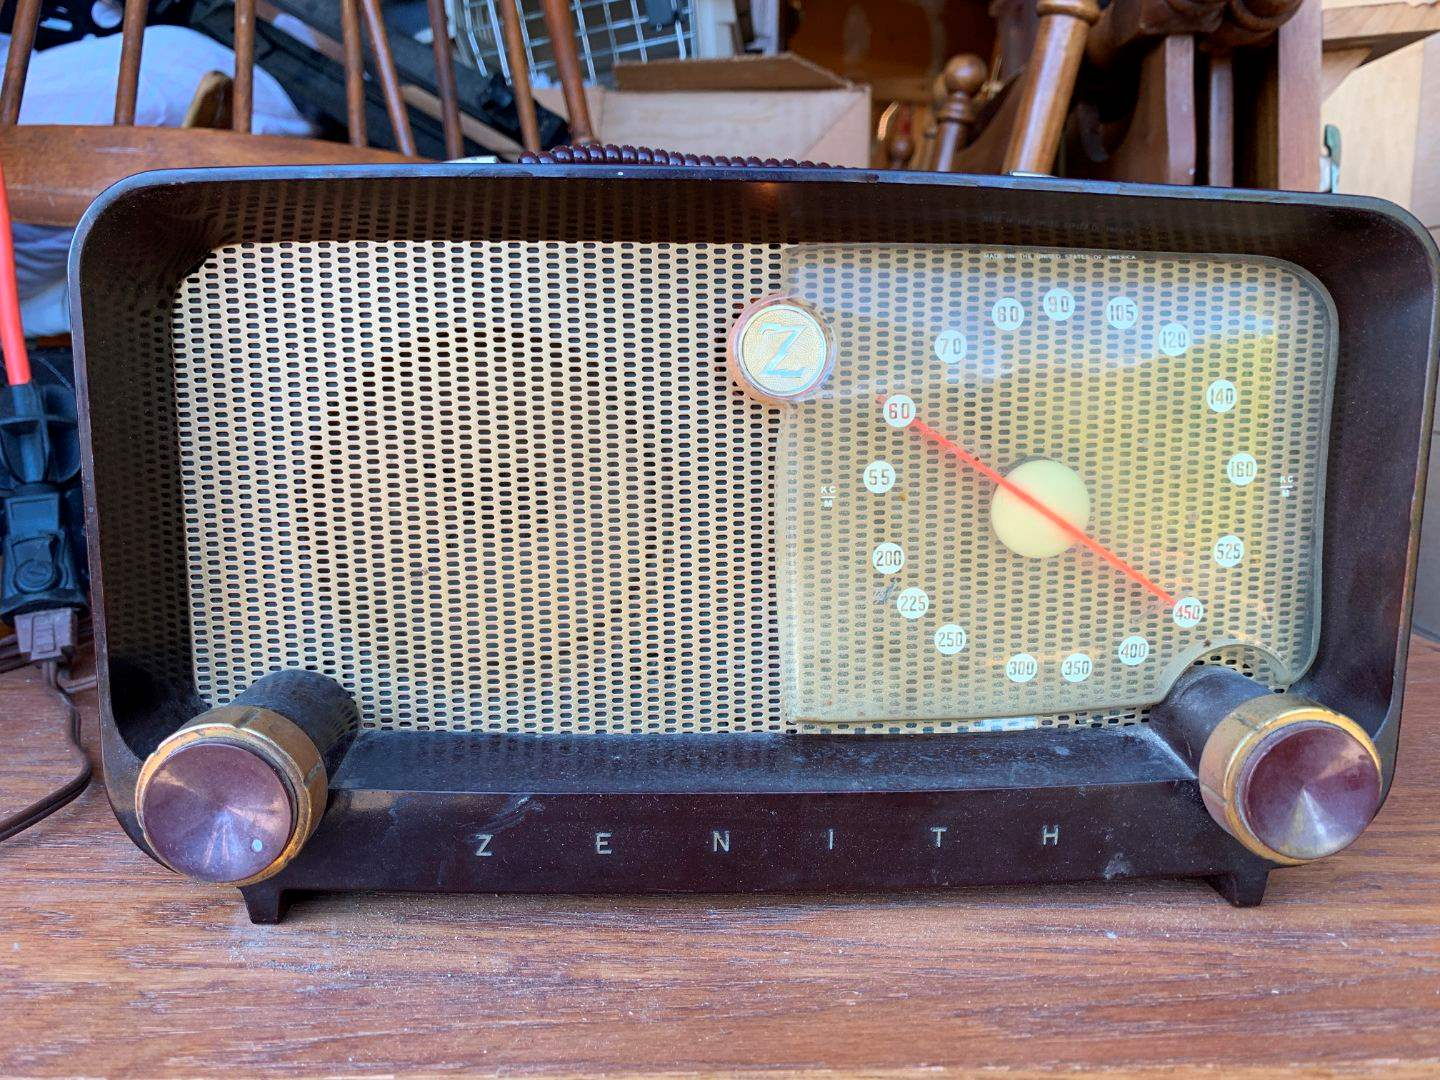 4 Zenith Long Distance Radio S-14976 (main image)